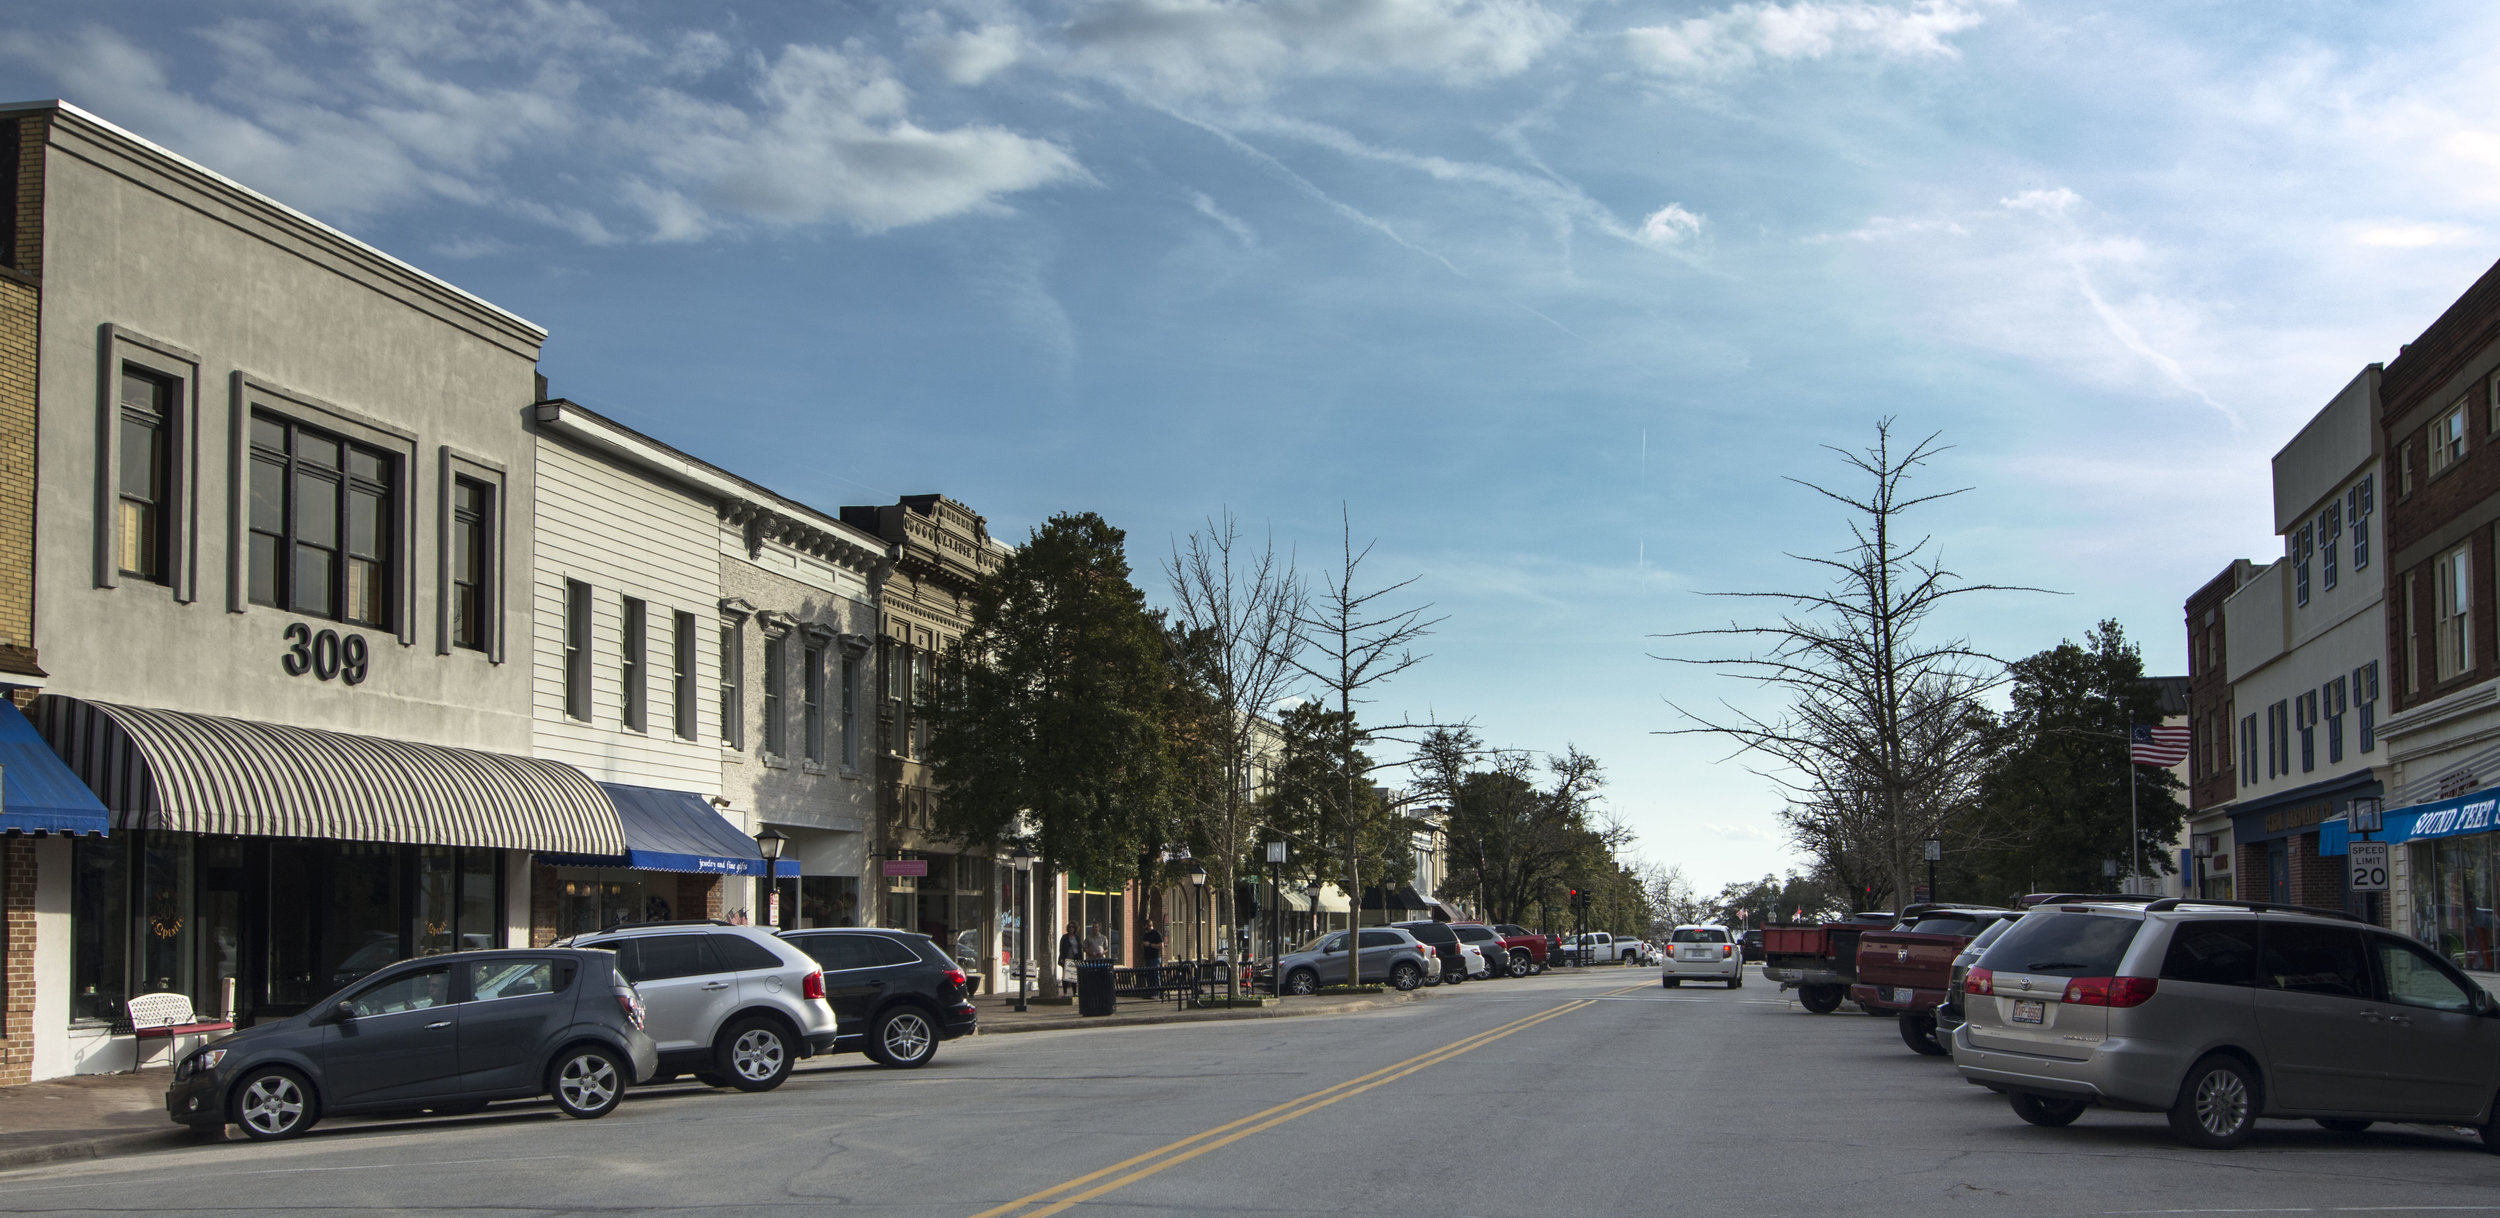 Broad Street in Edenton, NC is thriving